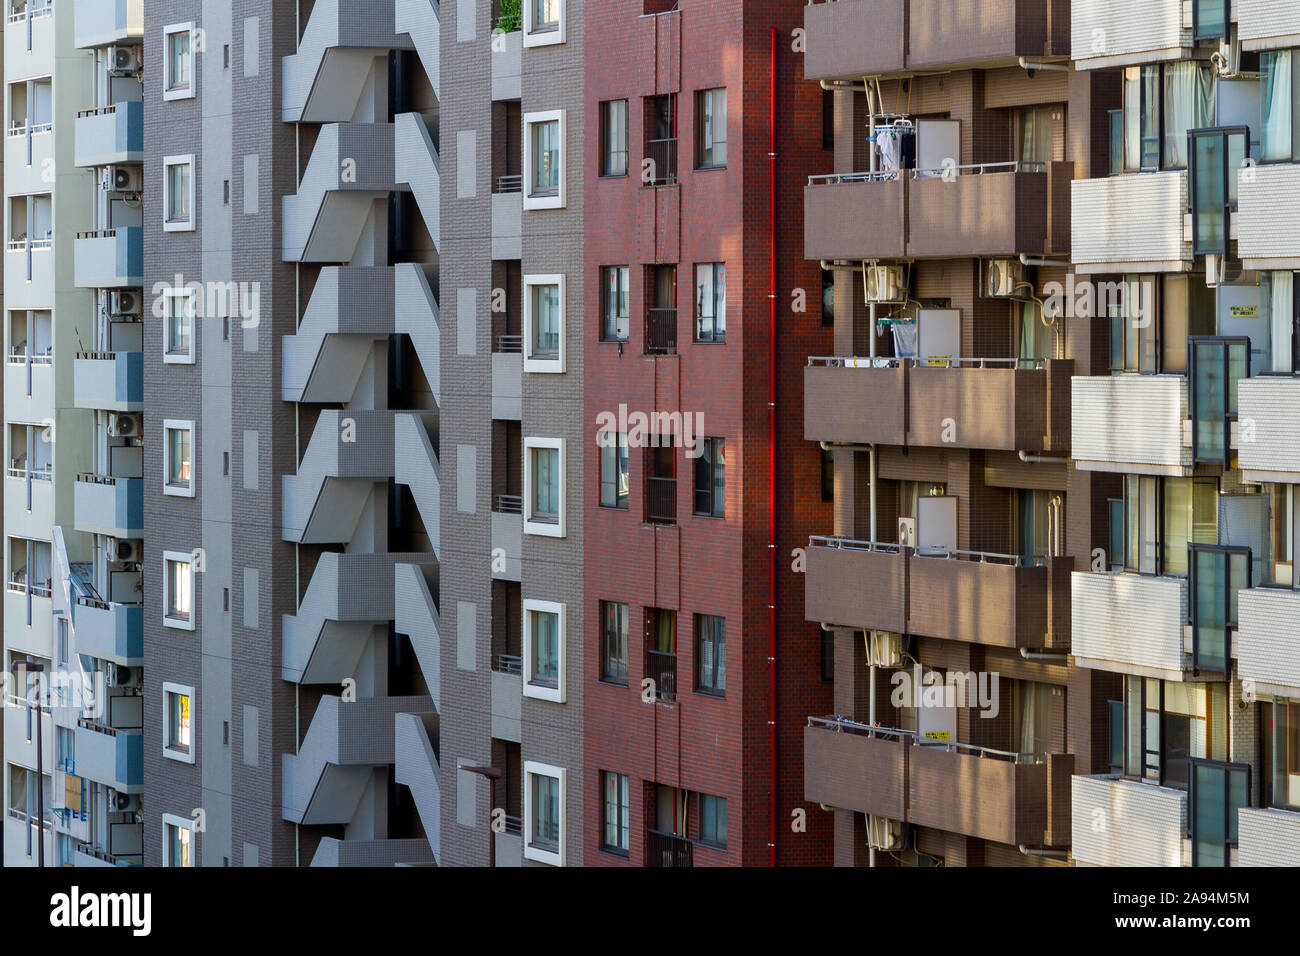 A street of high-rise apartment buildings in Myogadani, Tokyo, Japan Sunday November 10th 2019 Stock Photo